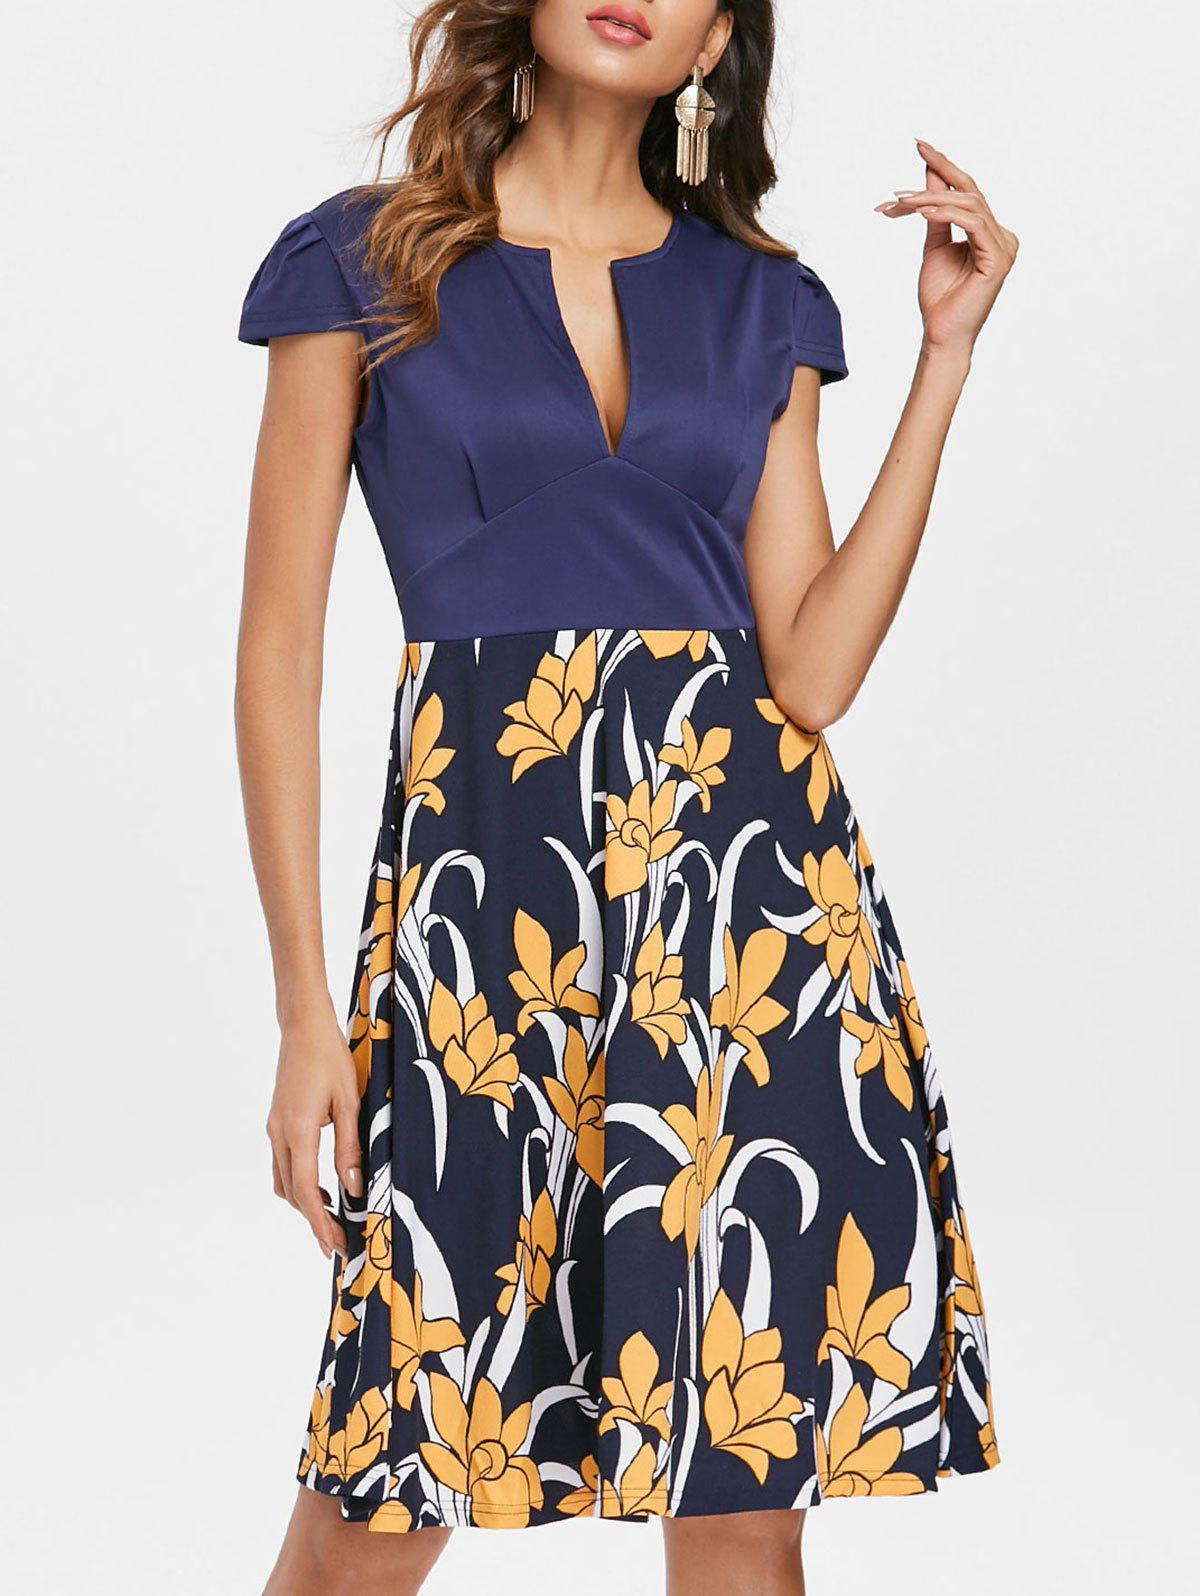 Fashion Low Cut Floral A Line Dress